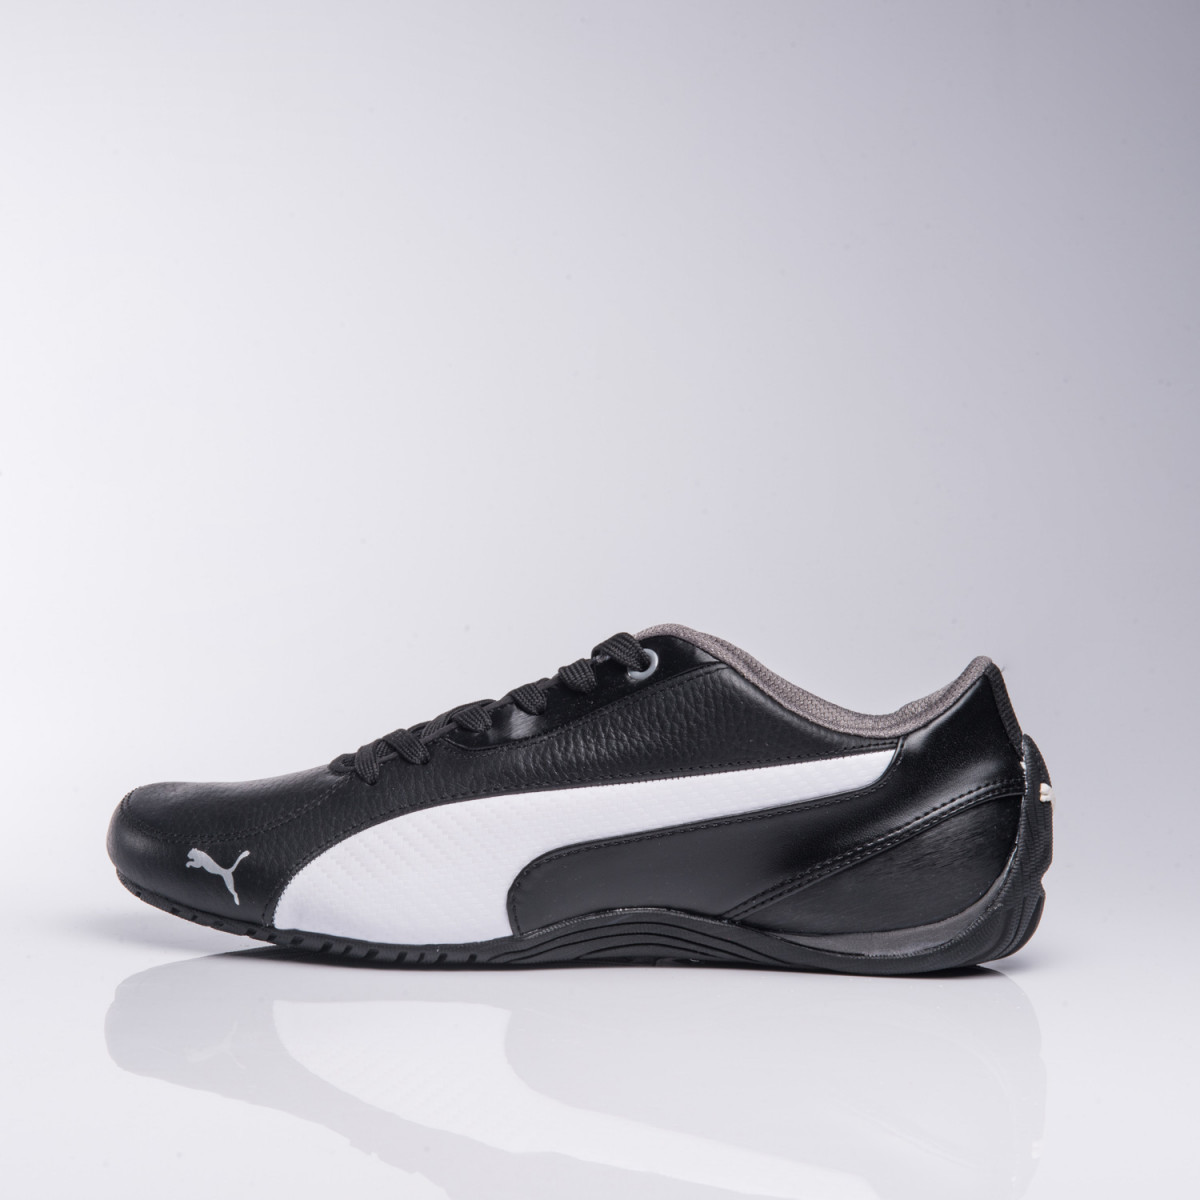 Zapatillas Puma Drift Cat 5 Carbon